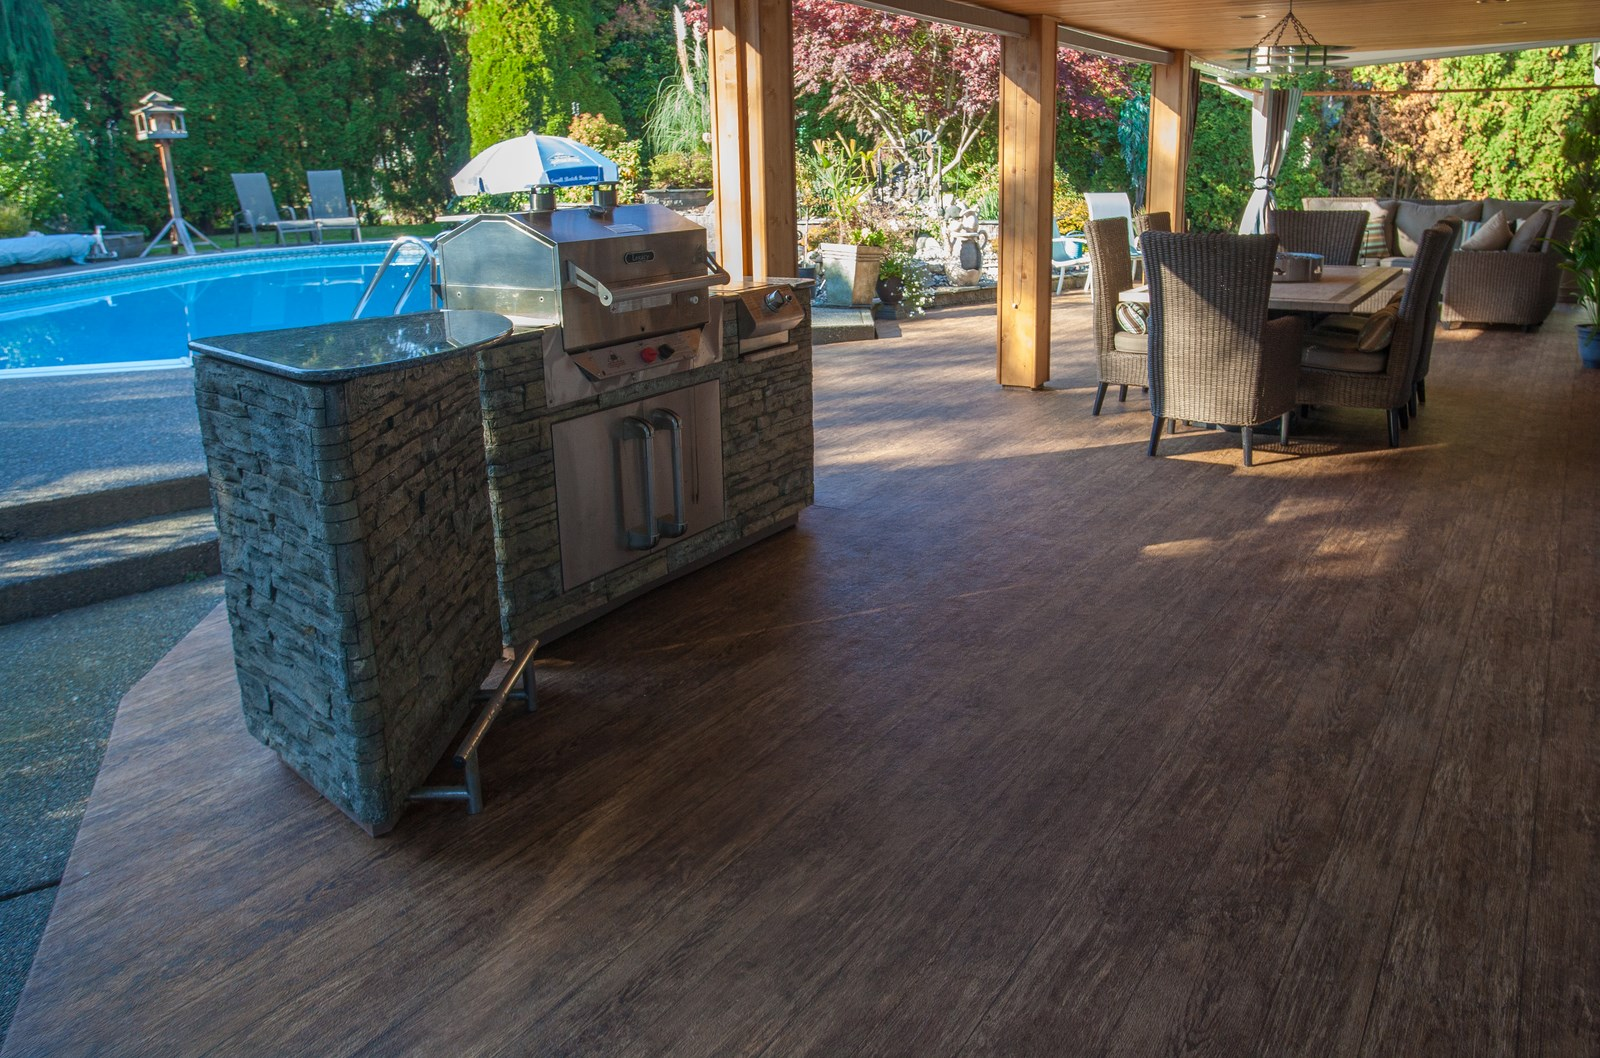 4 tips for outdoor kitchens on vinyl decks patios for Vinyl flooring outside porch